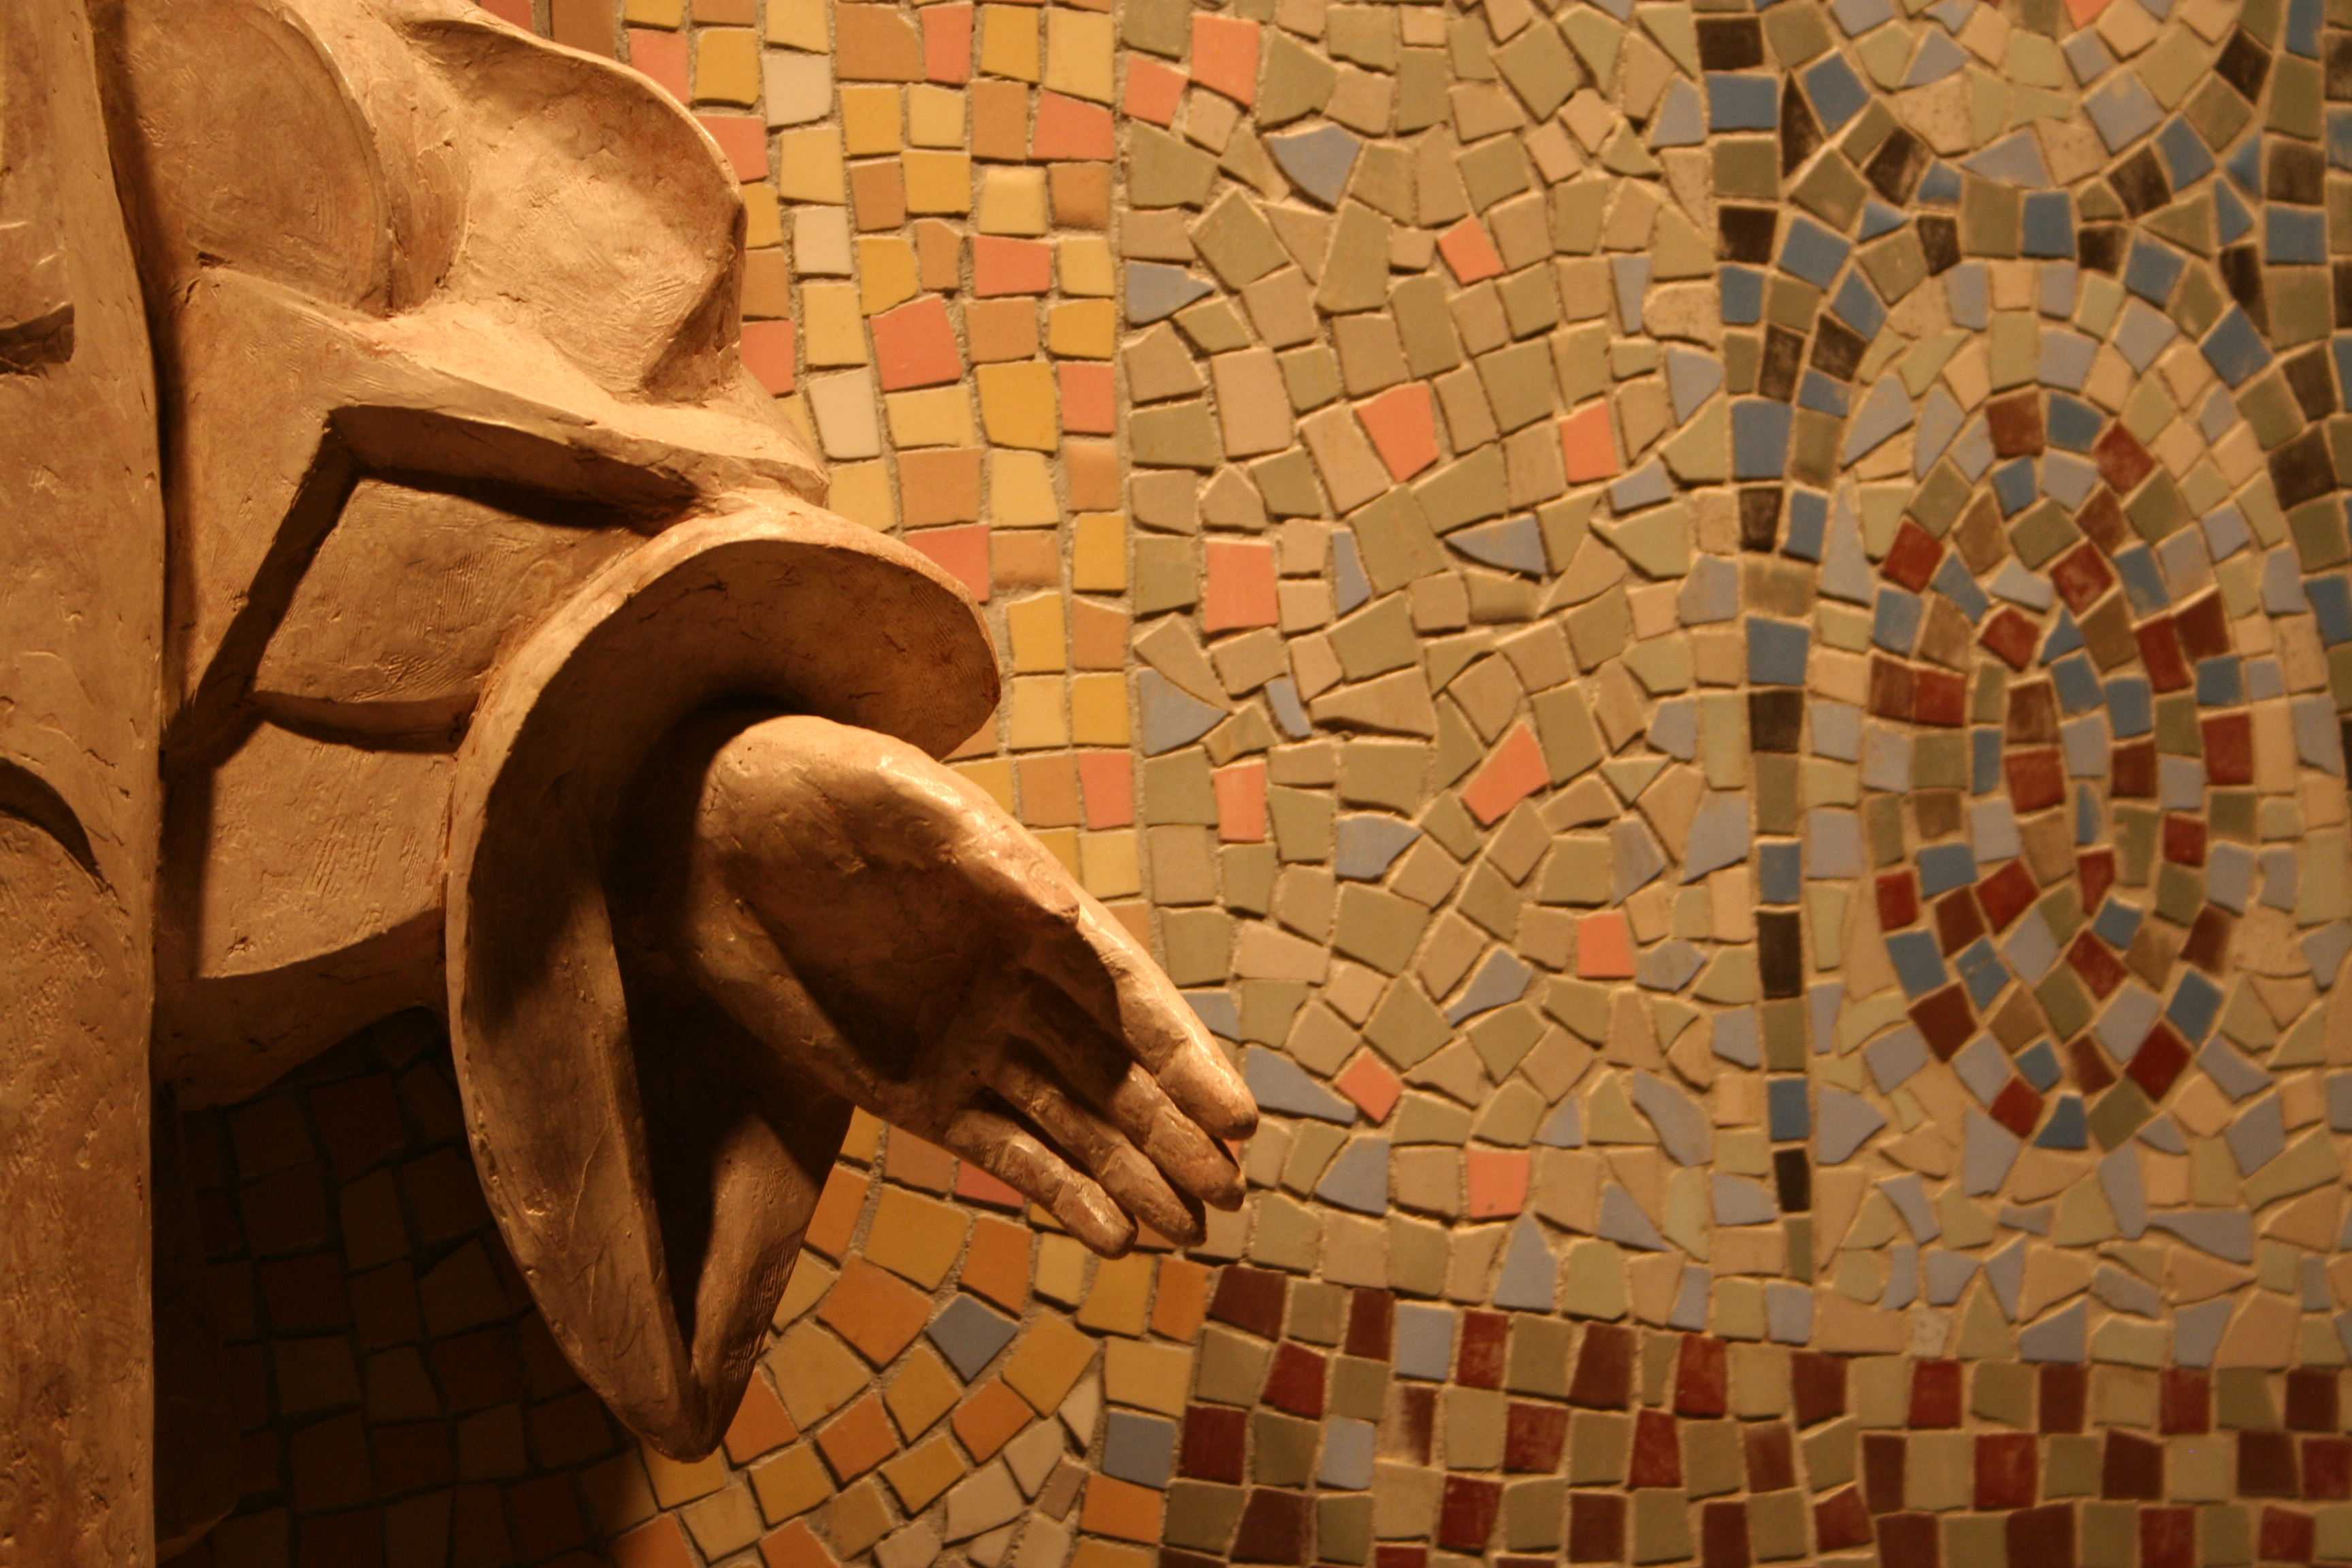 Christians Together: Planning an Ecumenical Worship Service